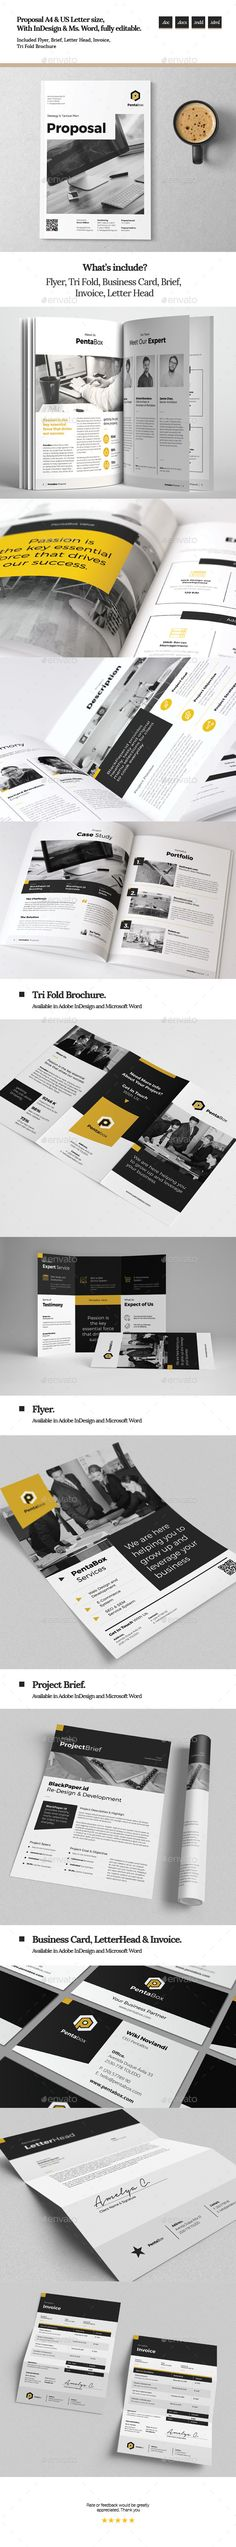 how to create a proposal template in word%0A Sugercube InDesign Proposal Template for Business   Proposal templates   Proposals and Template